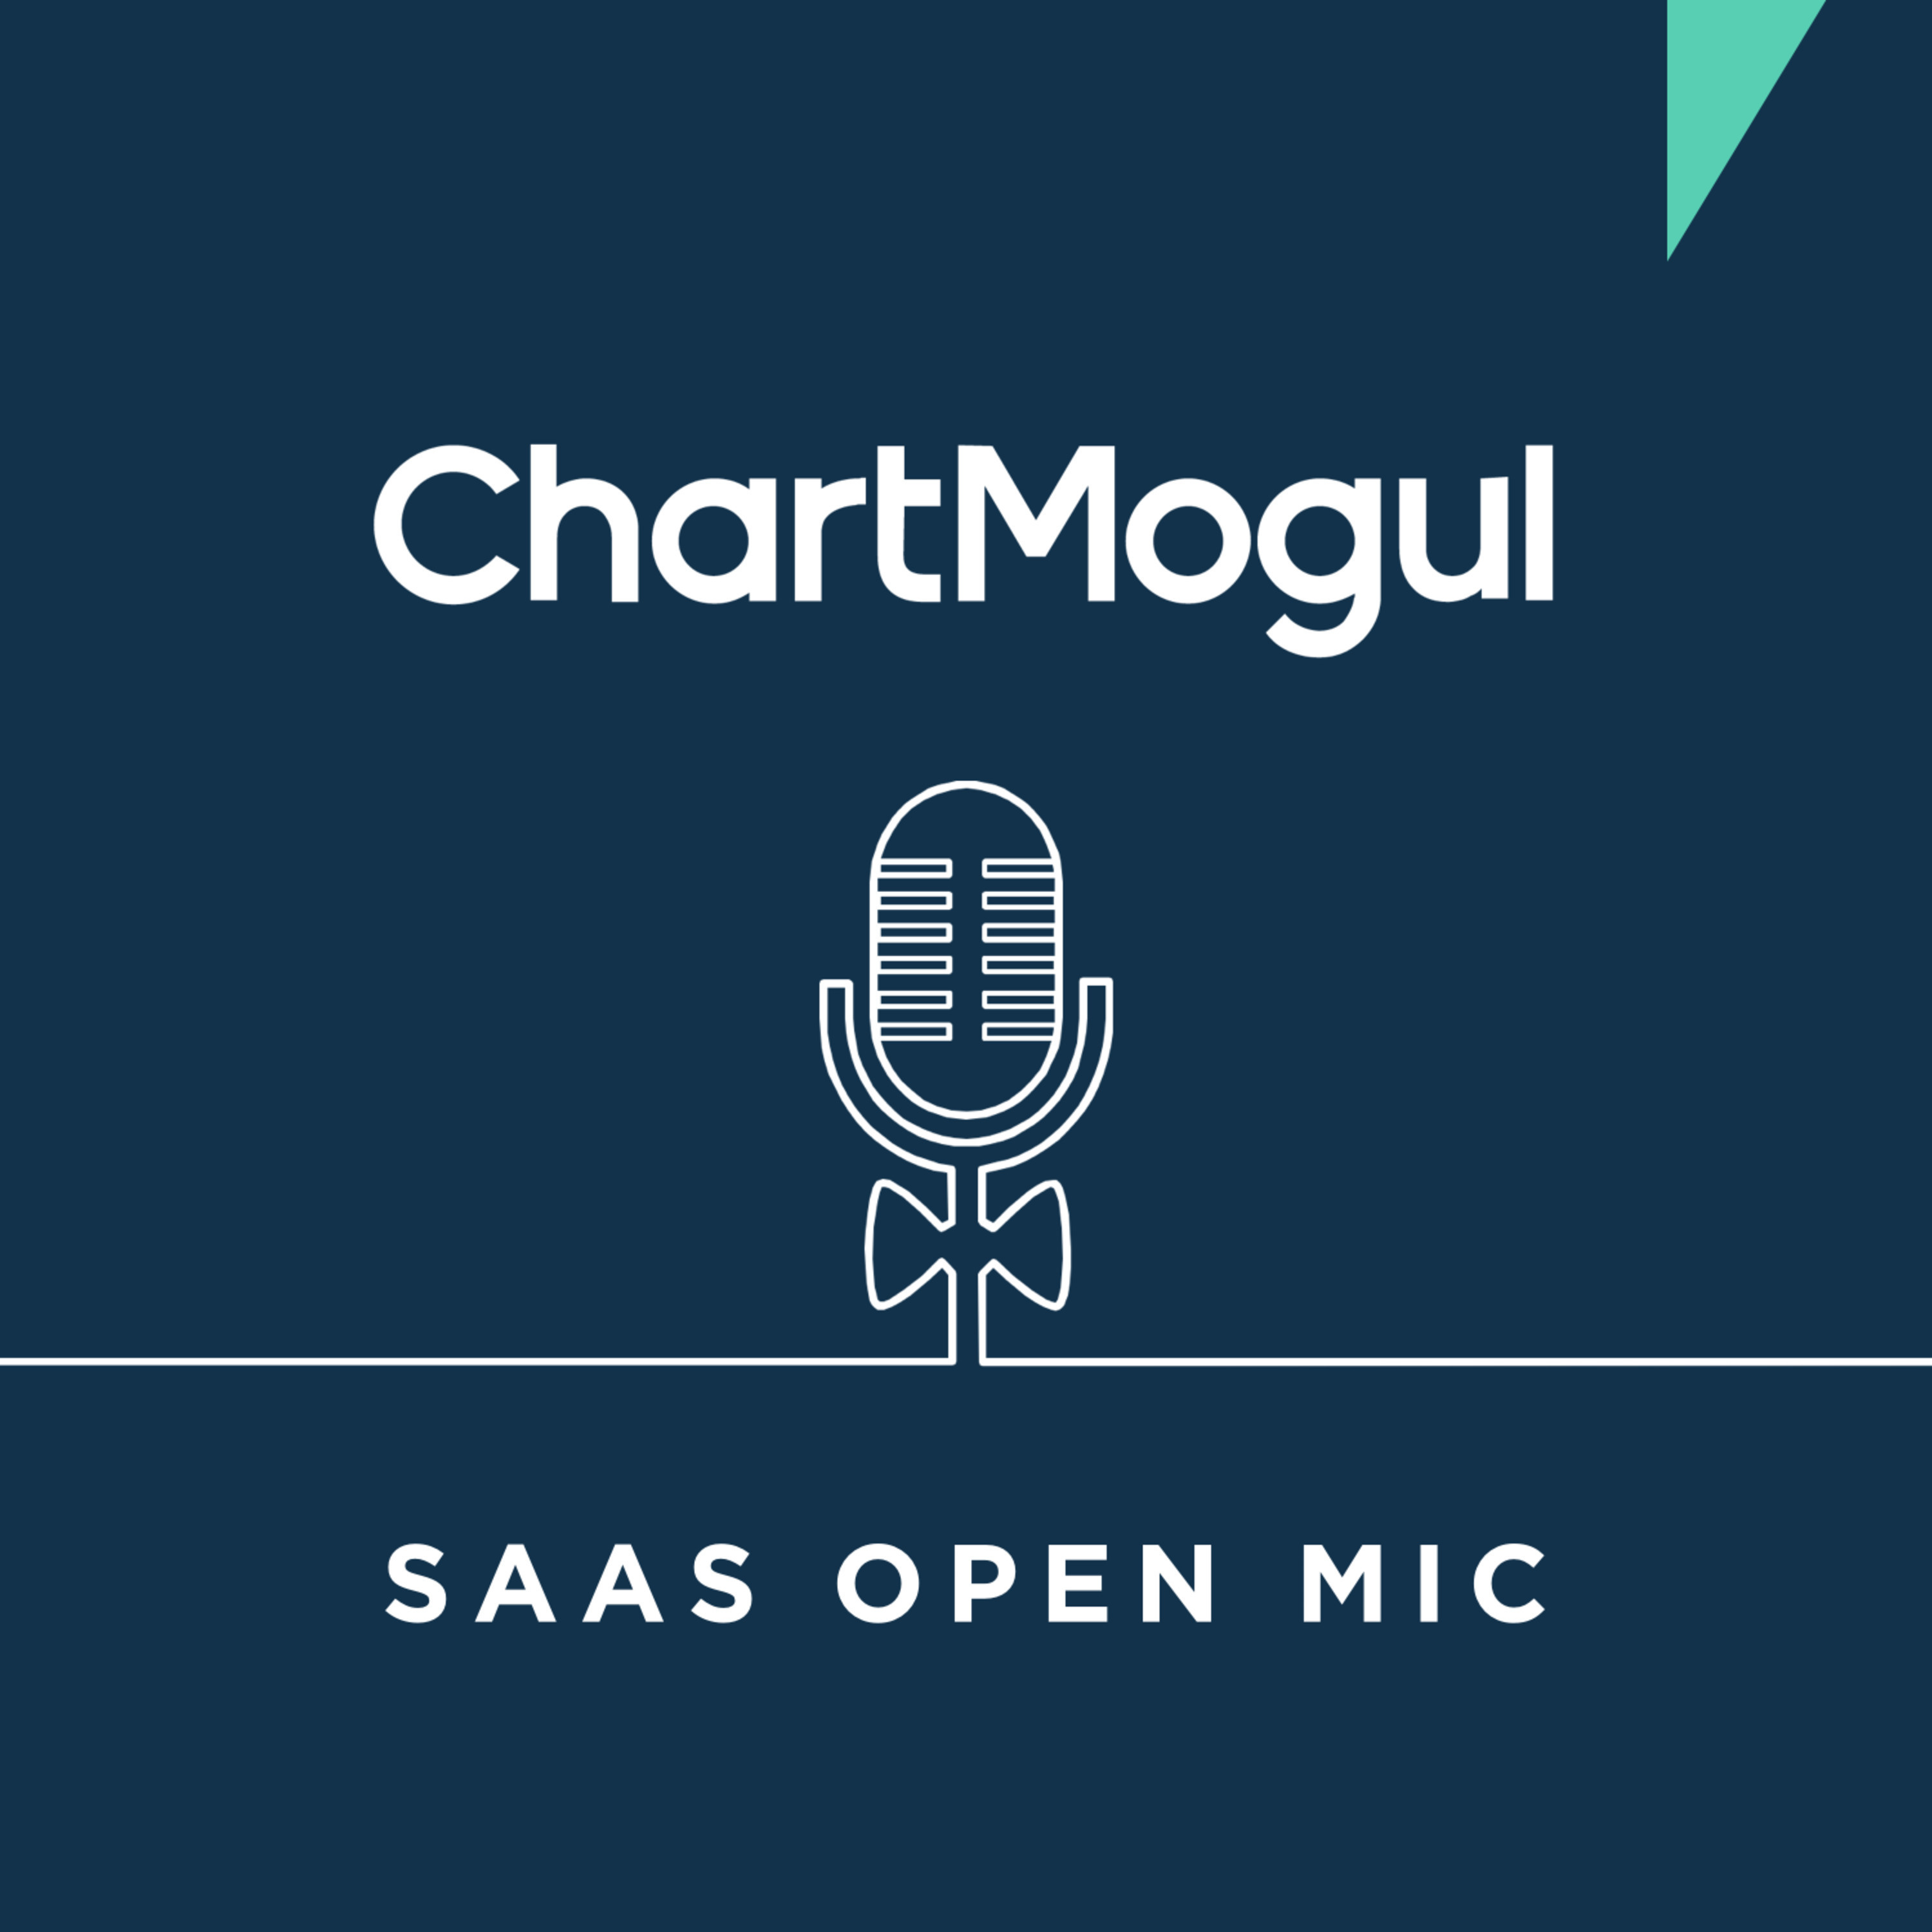 SaaS Open Mic by ChartMogul | Listen via Stitcher for Podcasts